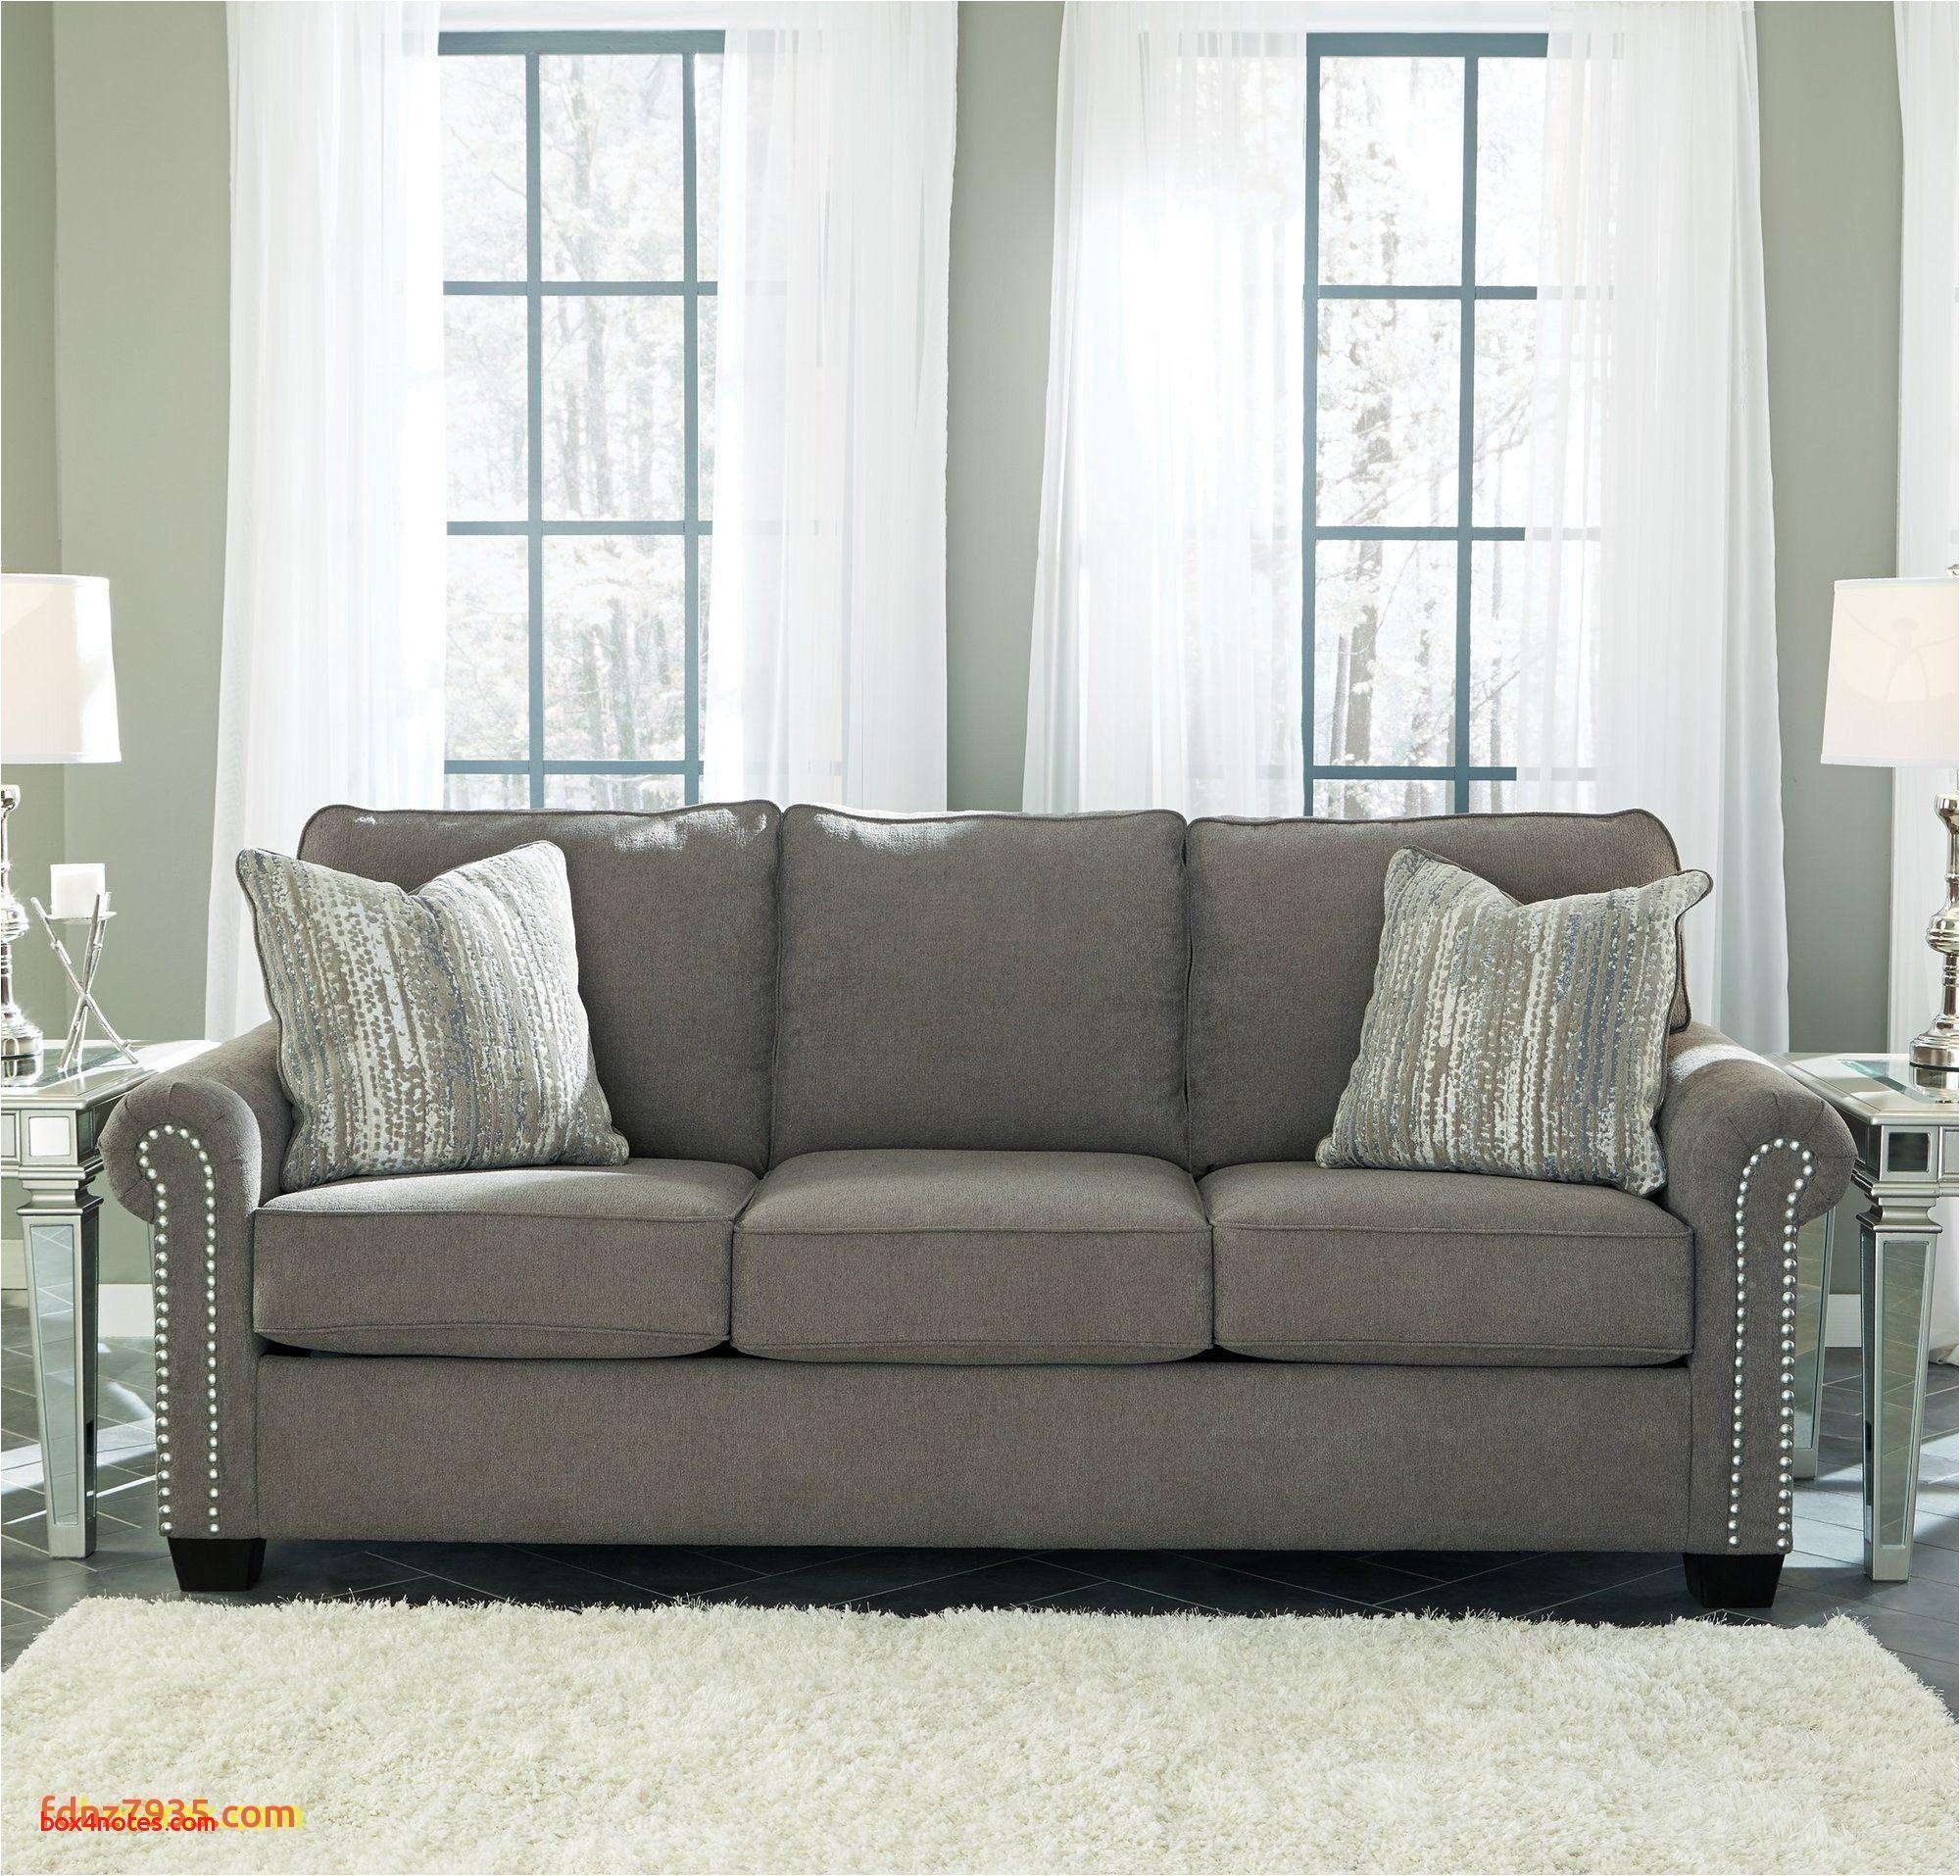 Grey Sofa Living Room Decor Best Of Luxury Living Room Furniture Kijiji Calgary In 2020 Elegant Living Room Living Room White Luxury Living Room